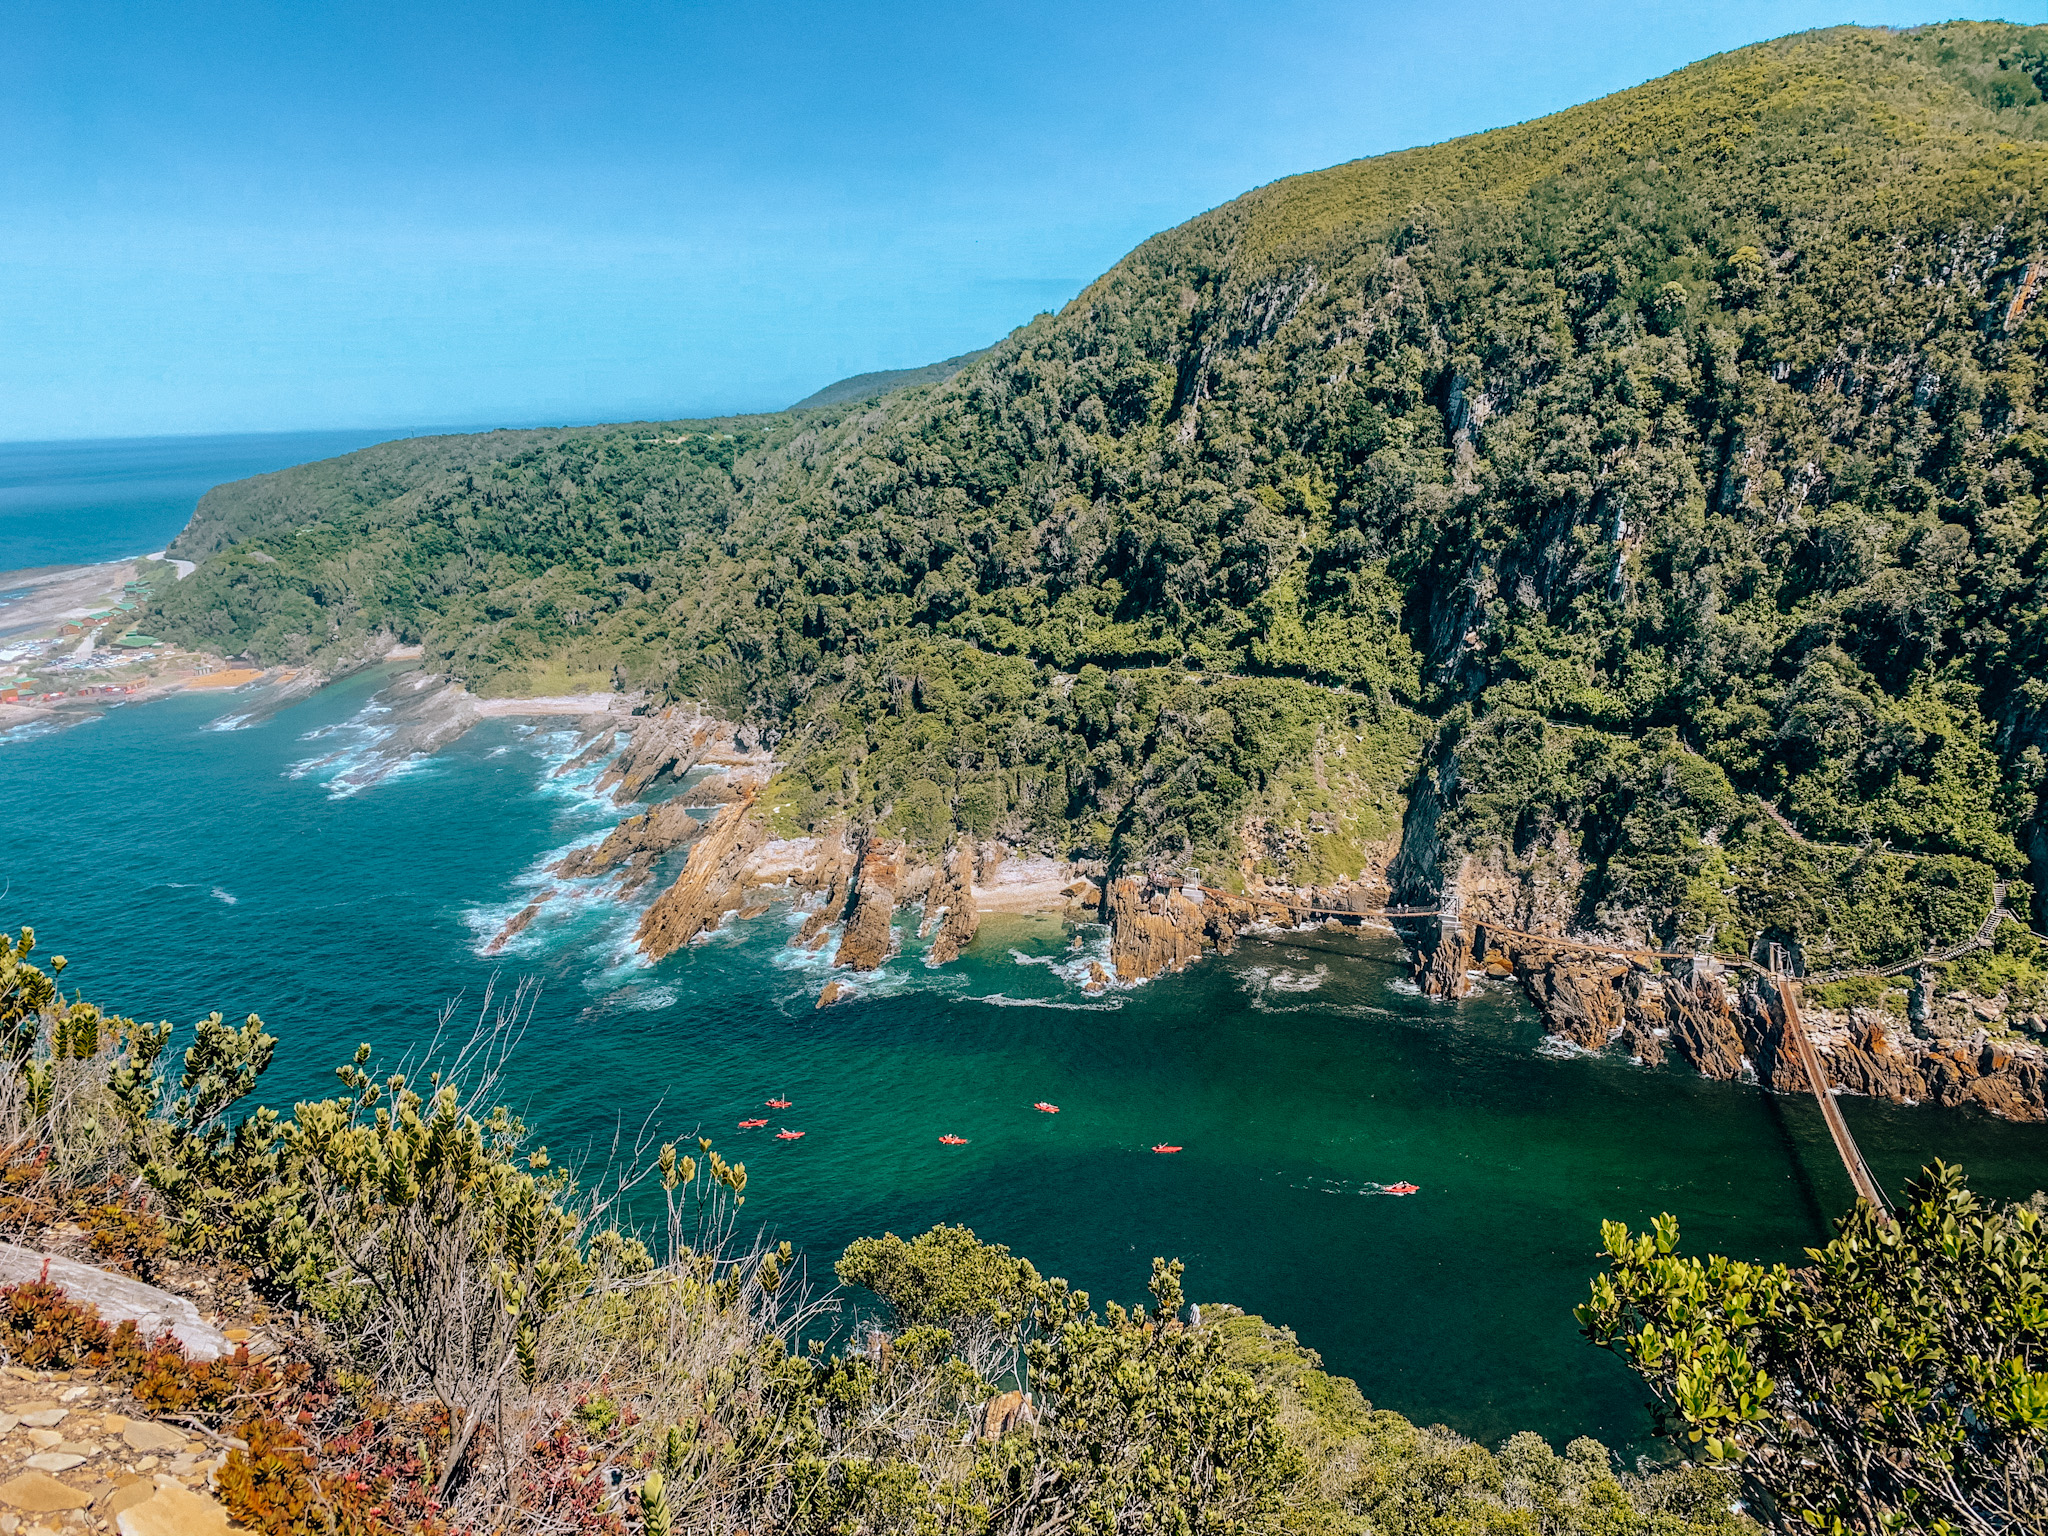 Storms River Mouth in Tsitsikamma National Park. Photo: Kellie Paxian